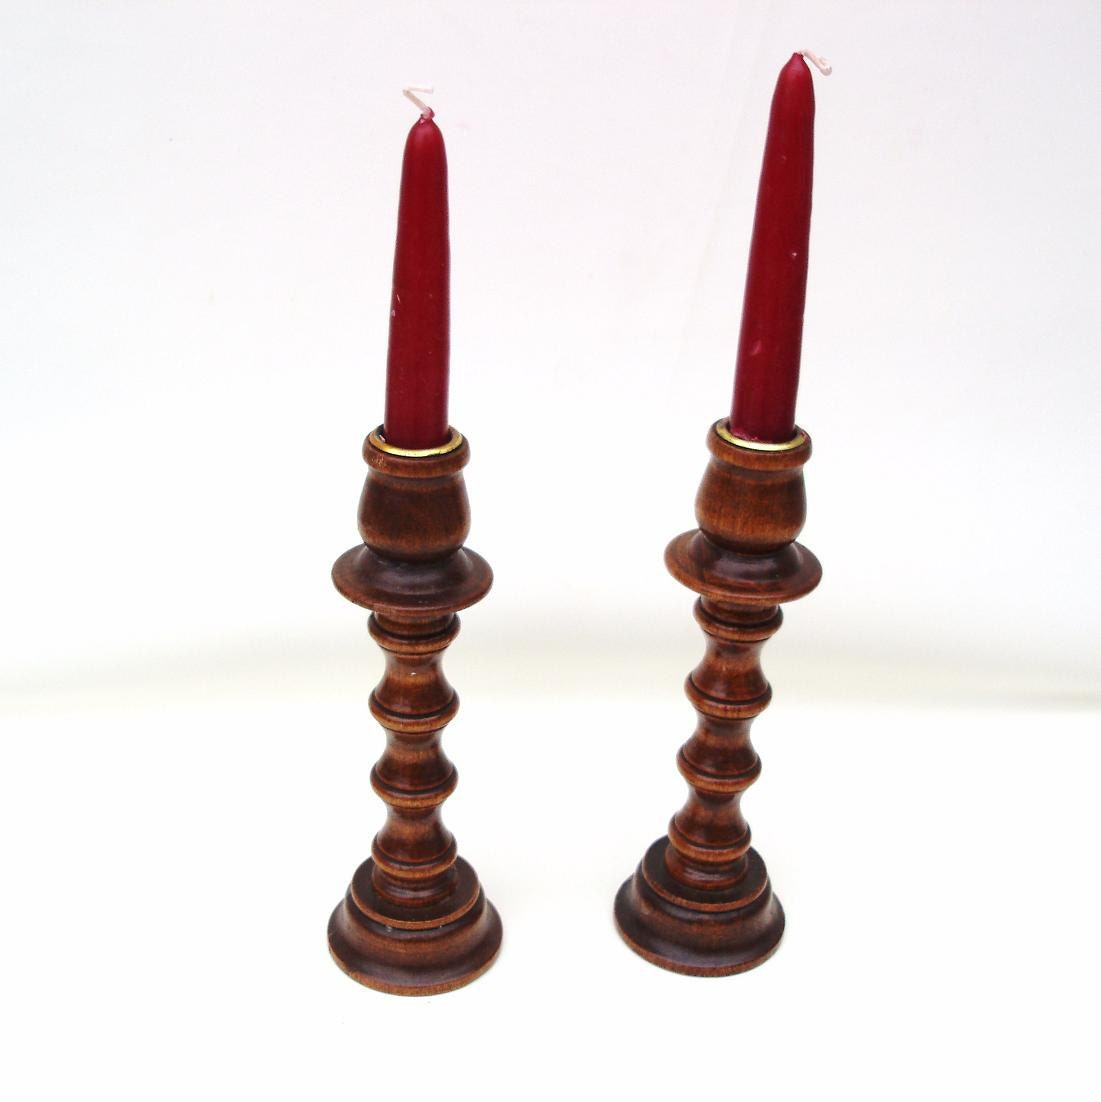 Vintage Wooden Candlesticks Wood Candle Holders Adjustable